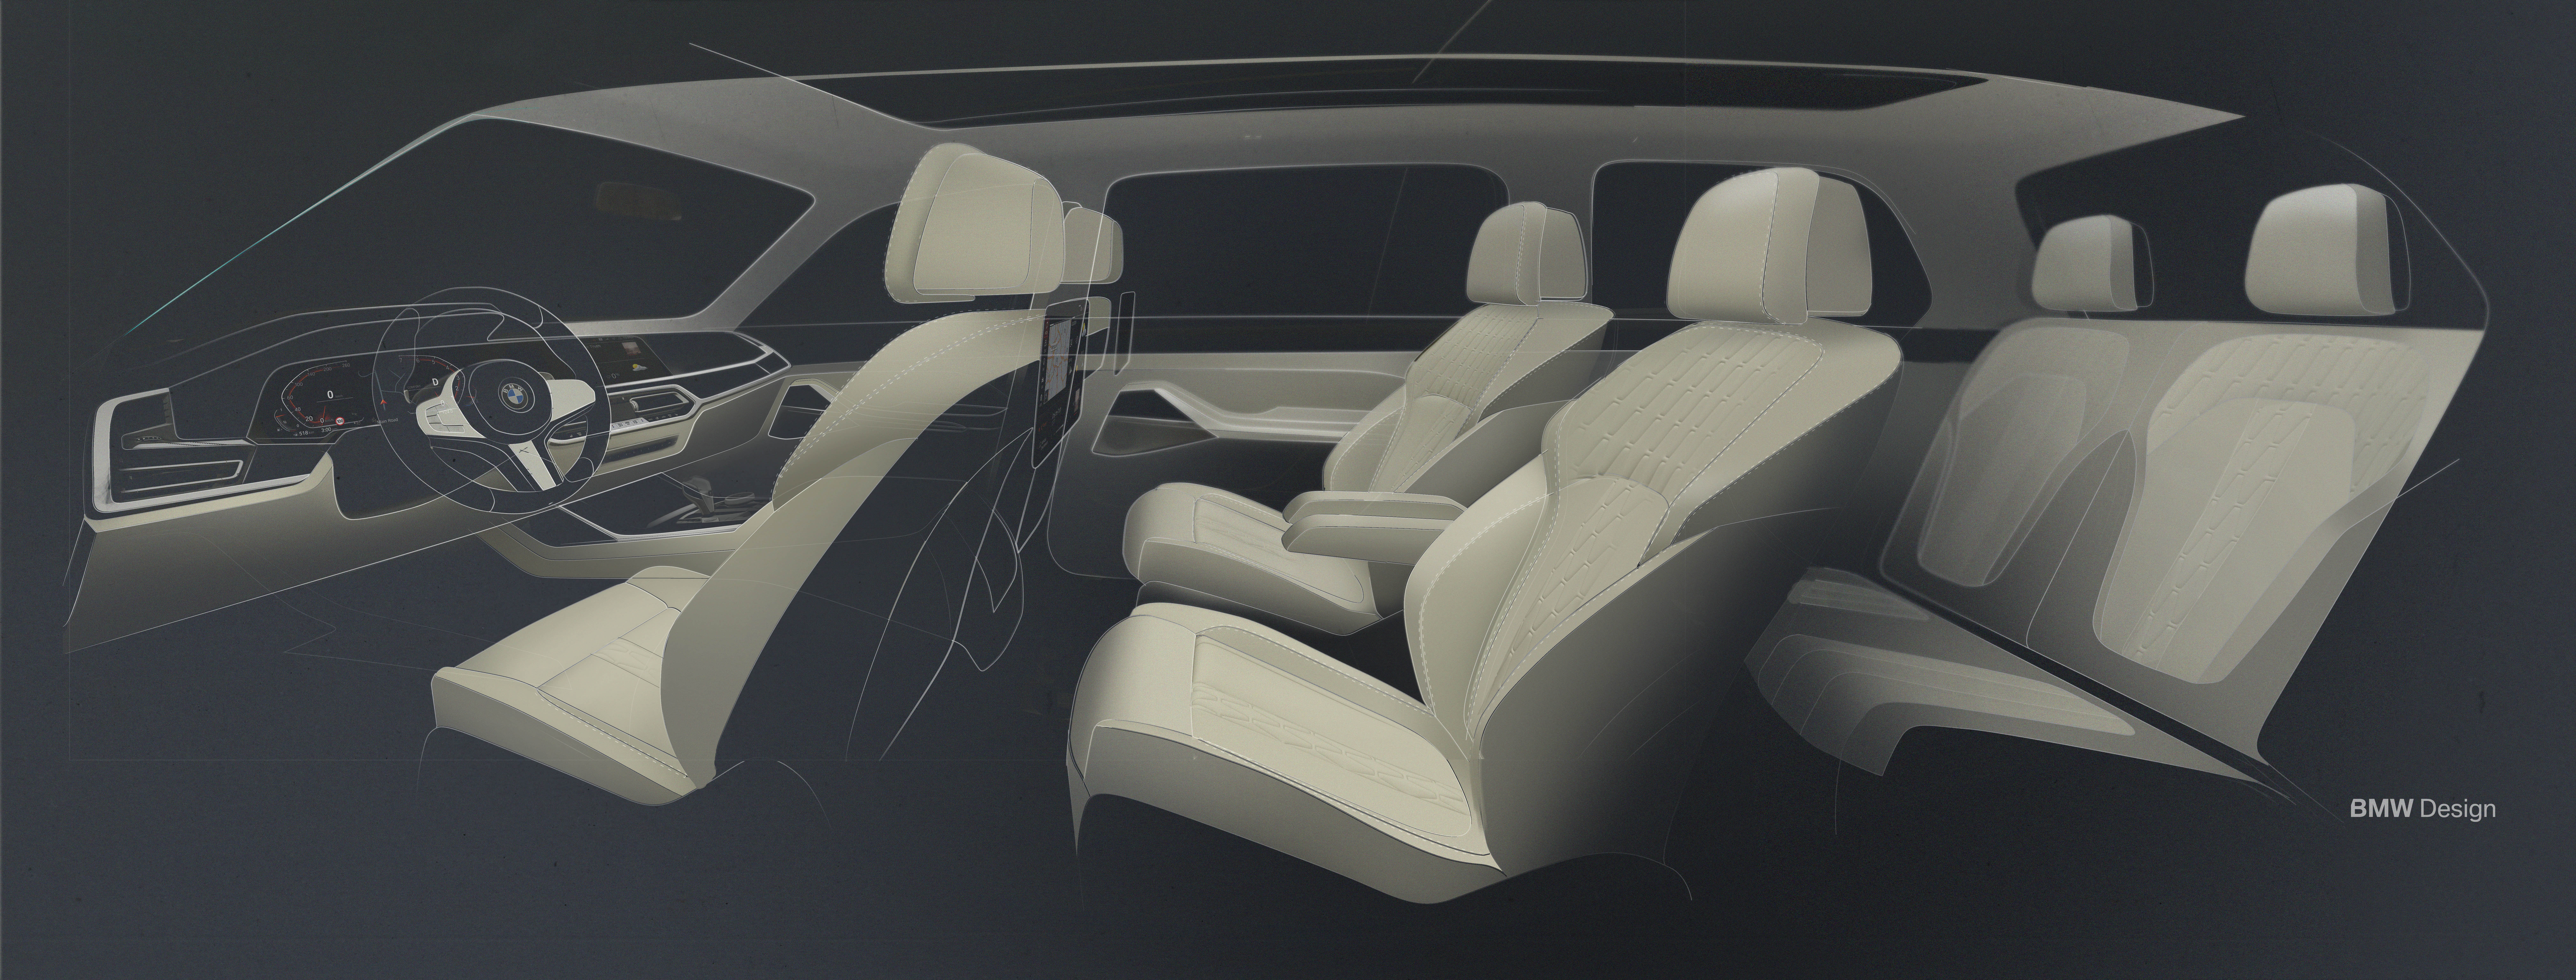 G07 BMW X7 makes its official debut – three-row SUV Image #874230